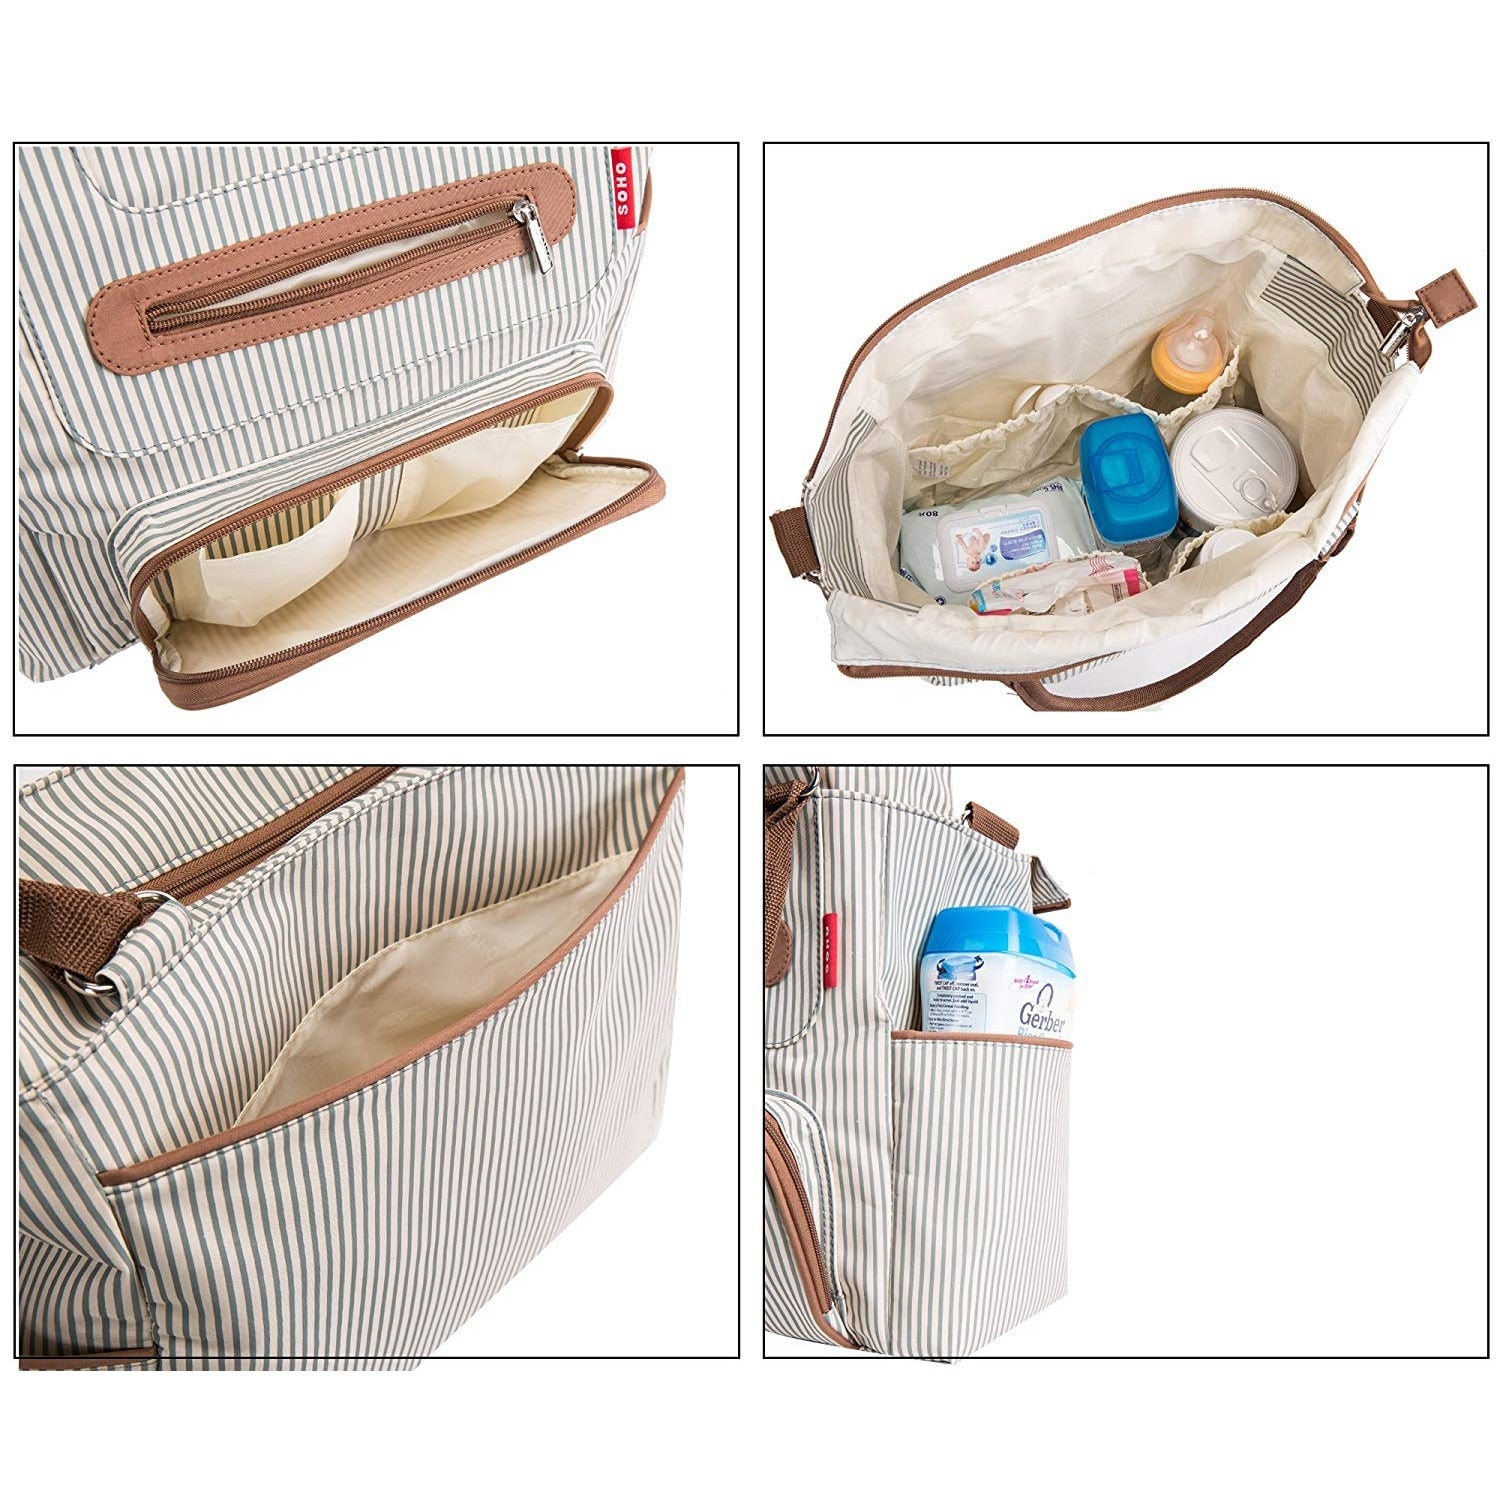 lovebabymammy.com Diaper bag 7 pieces set nappy tote bag large capacity for baby mom dad Travel Bag with Stroller Straps (khaki)